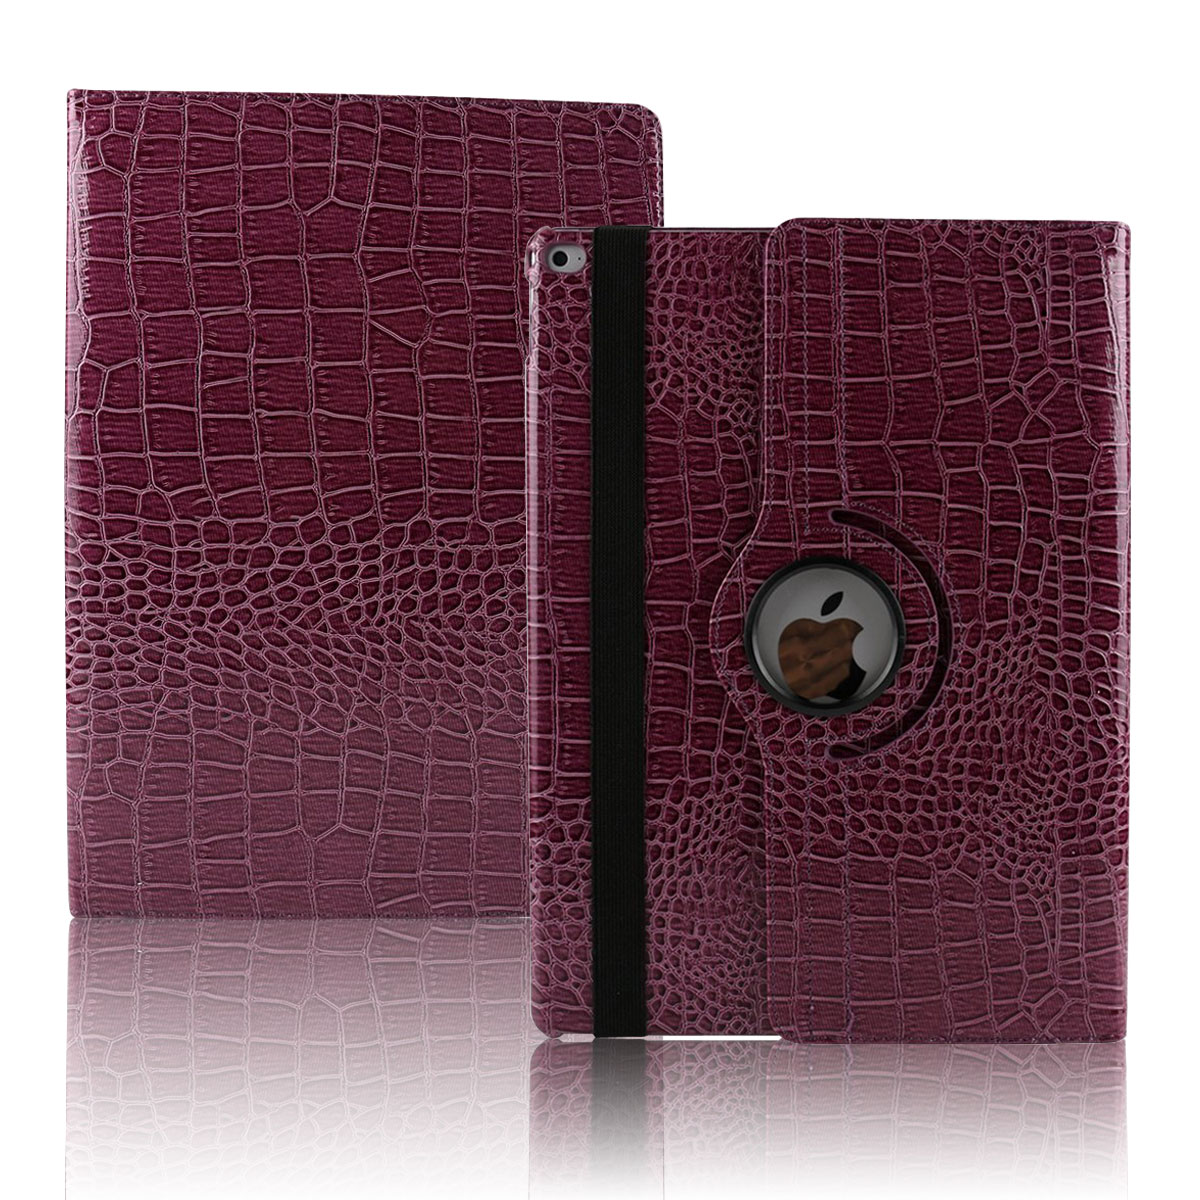 For Ipad 9 7 5th Gen 2017 A1822 A1823 Smart Folio Leather